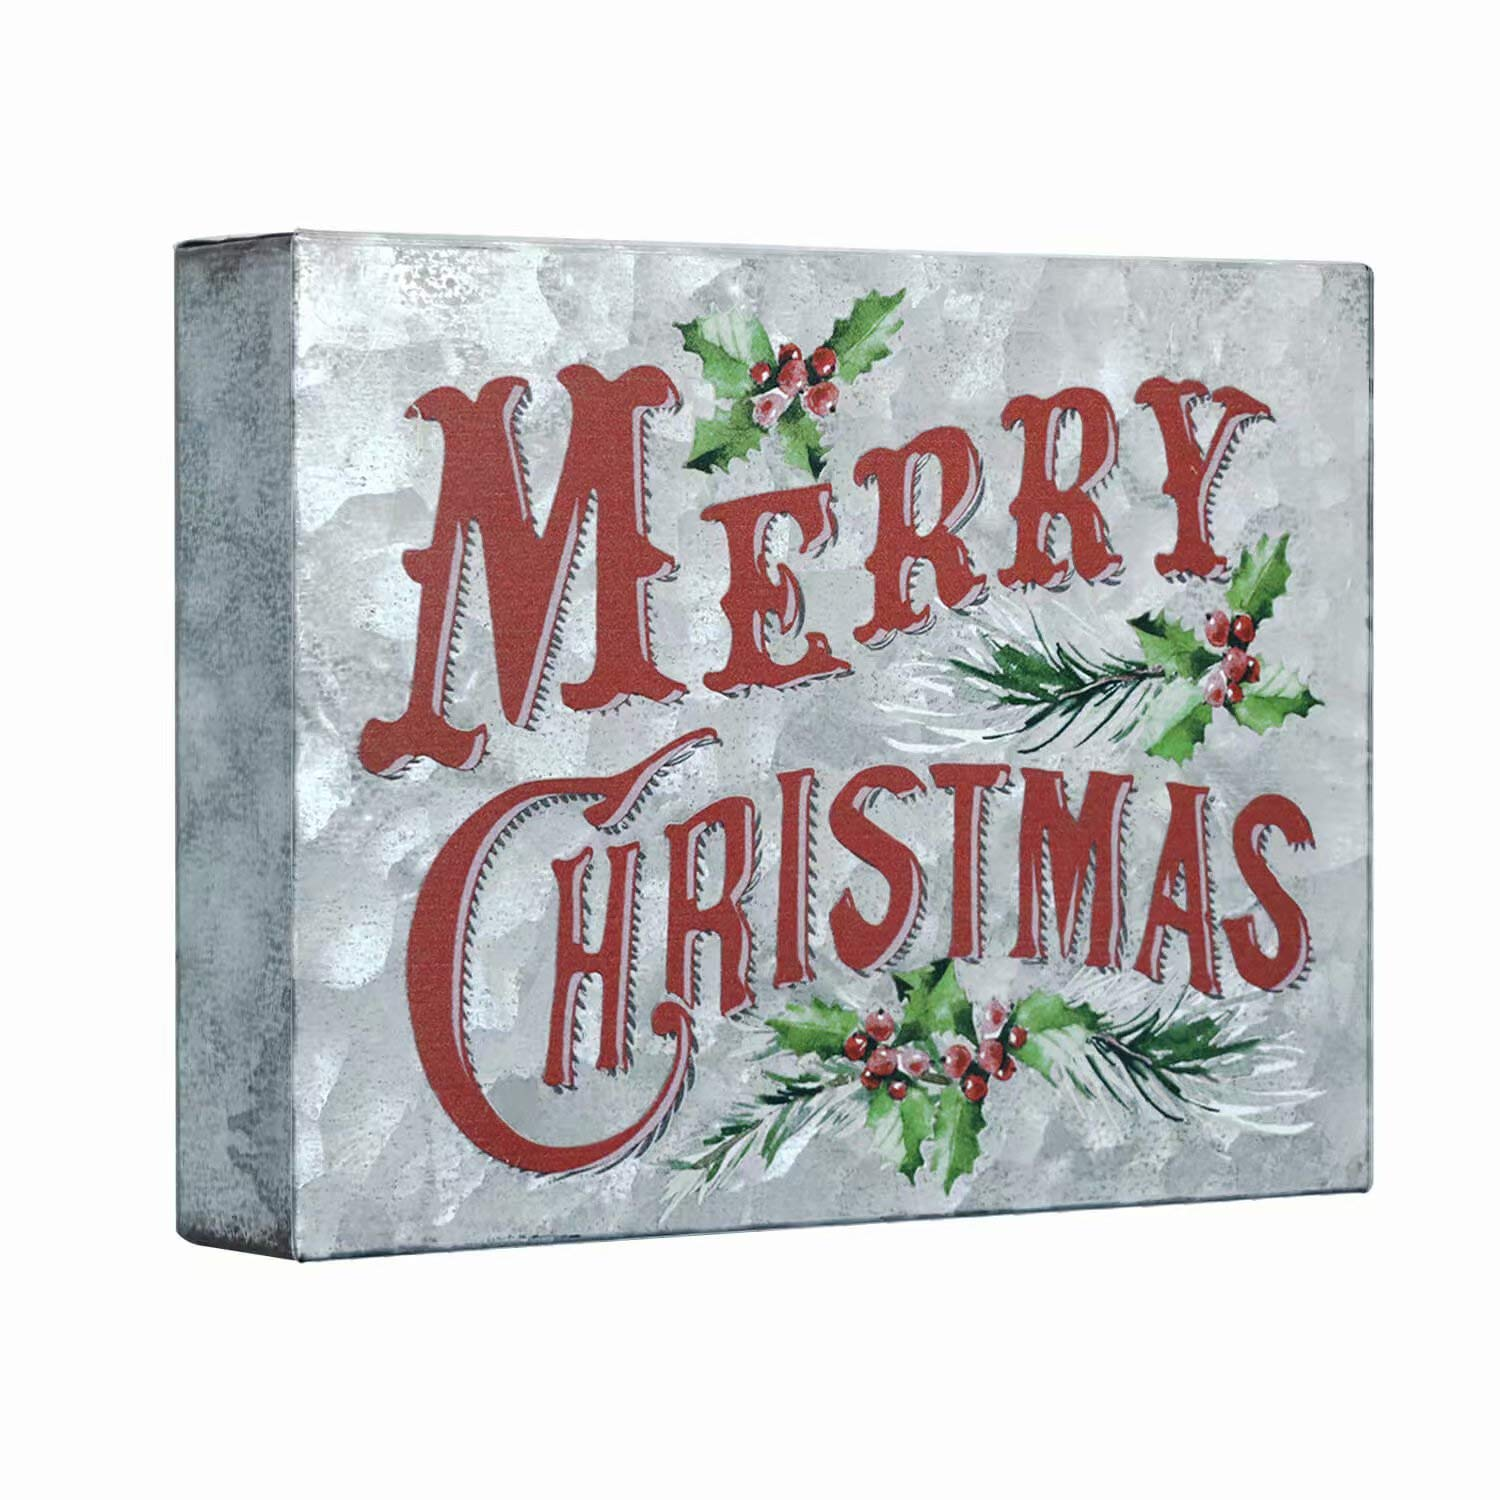 SANY DAYO HOME 6 x 8 inches Colorful Retro Galvanized Sheet Box Sign with Inspirational Saying for Home and Office Decor - Merry Christmas